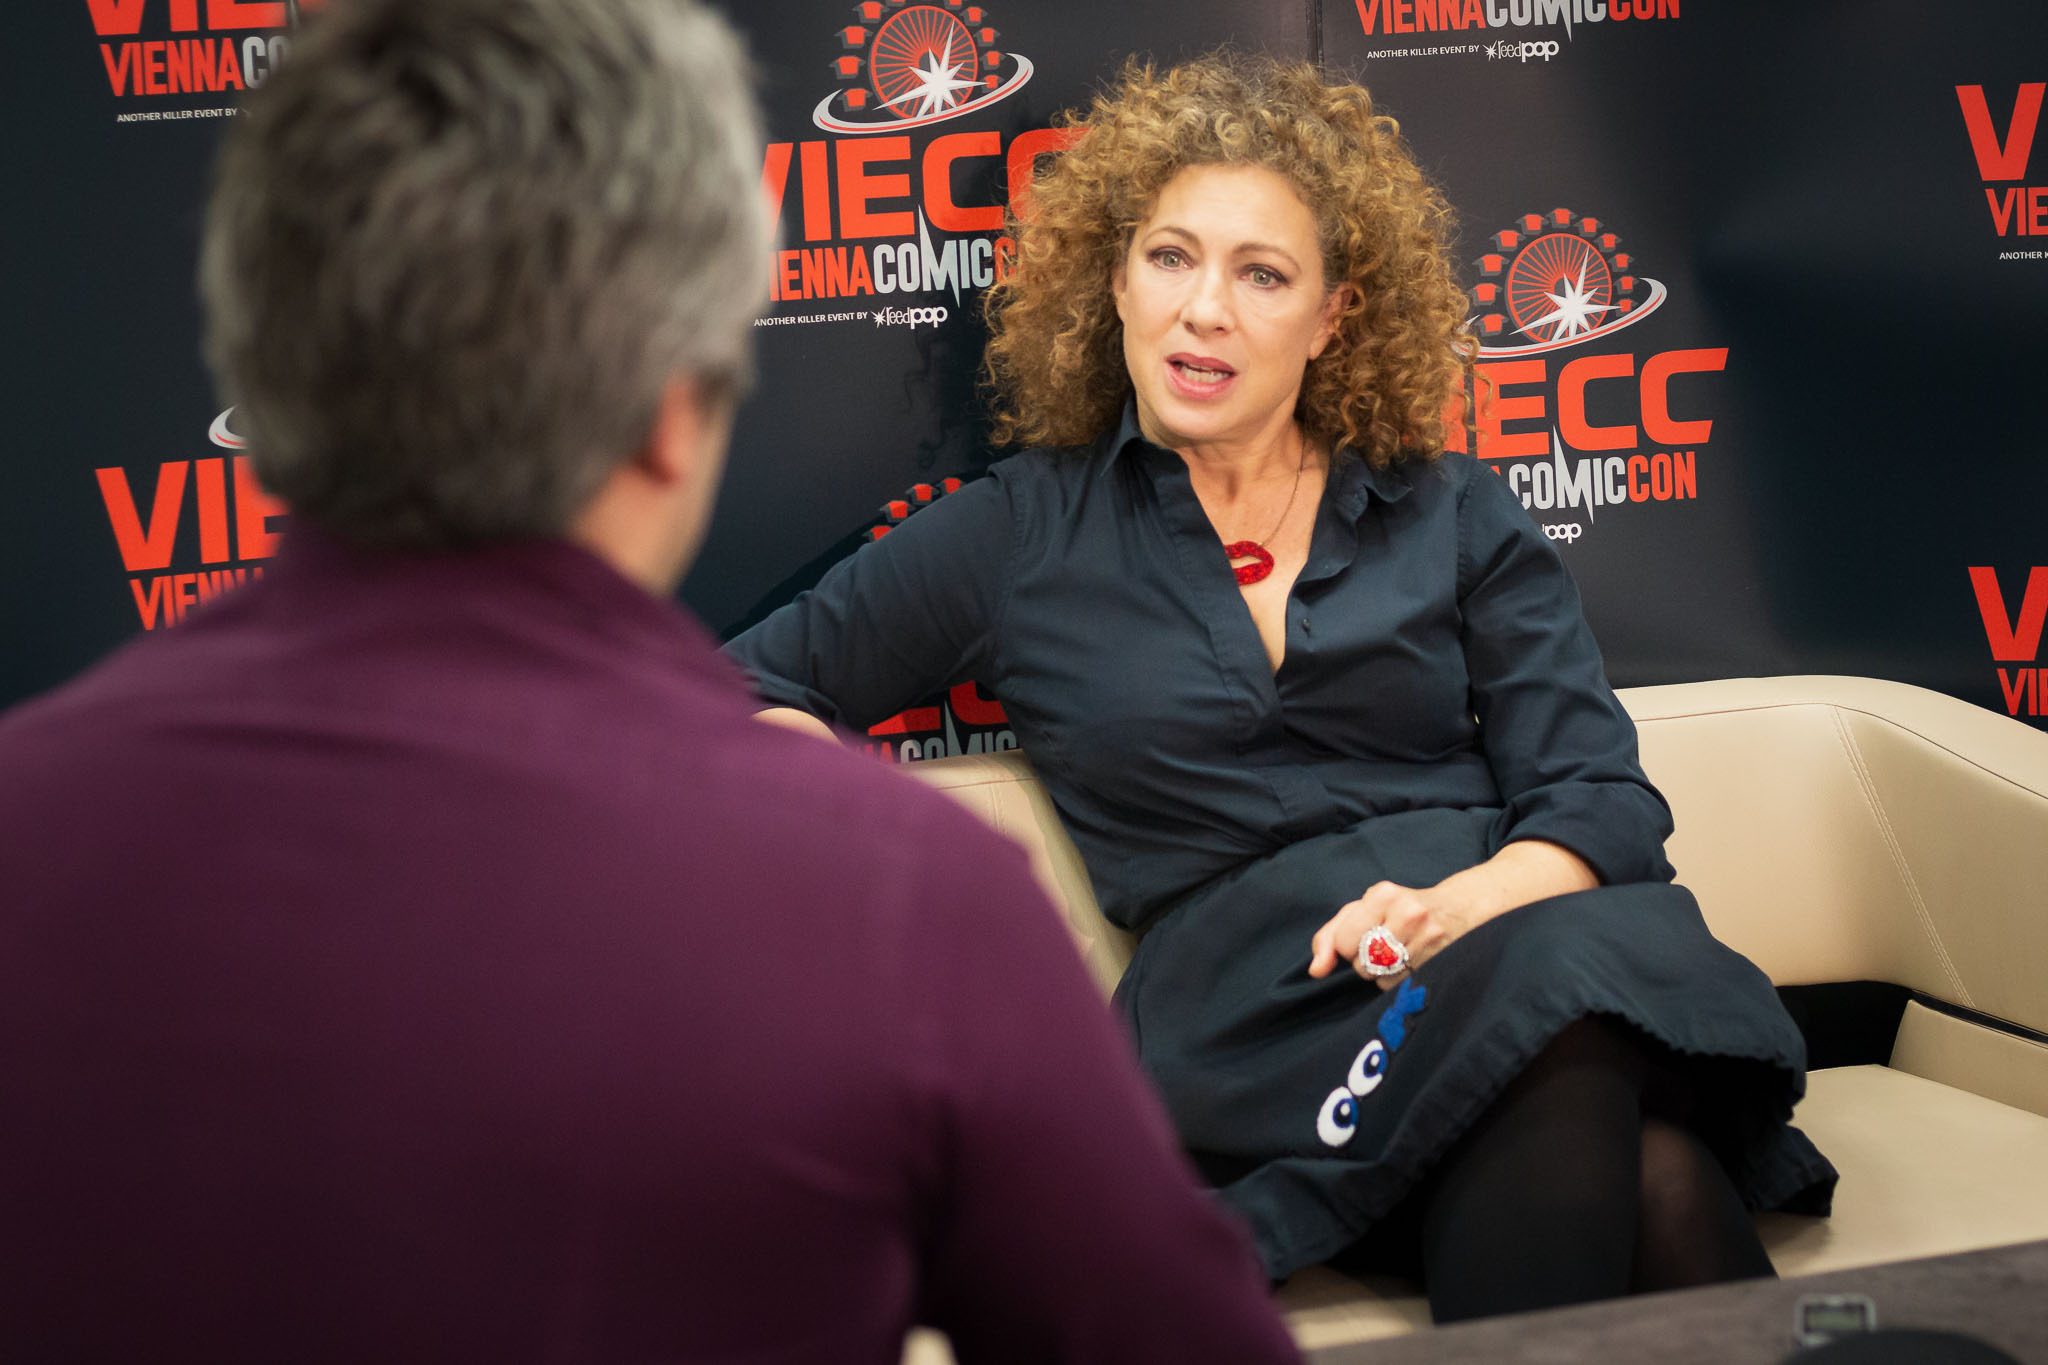 Alex Kingston auf der Vienna Comic Con 2019 VIECC